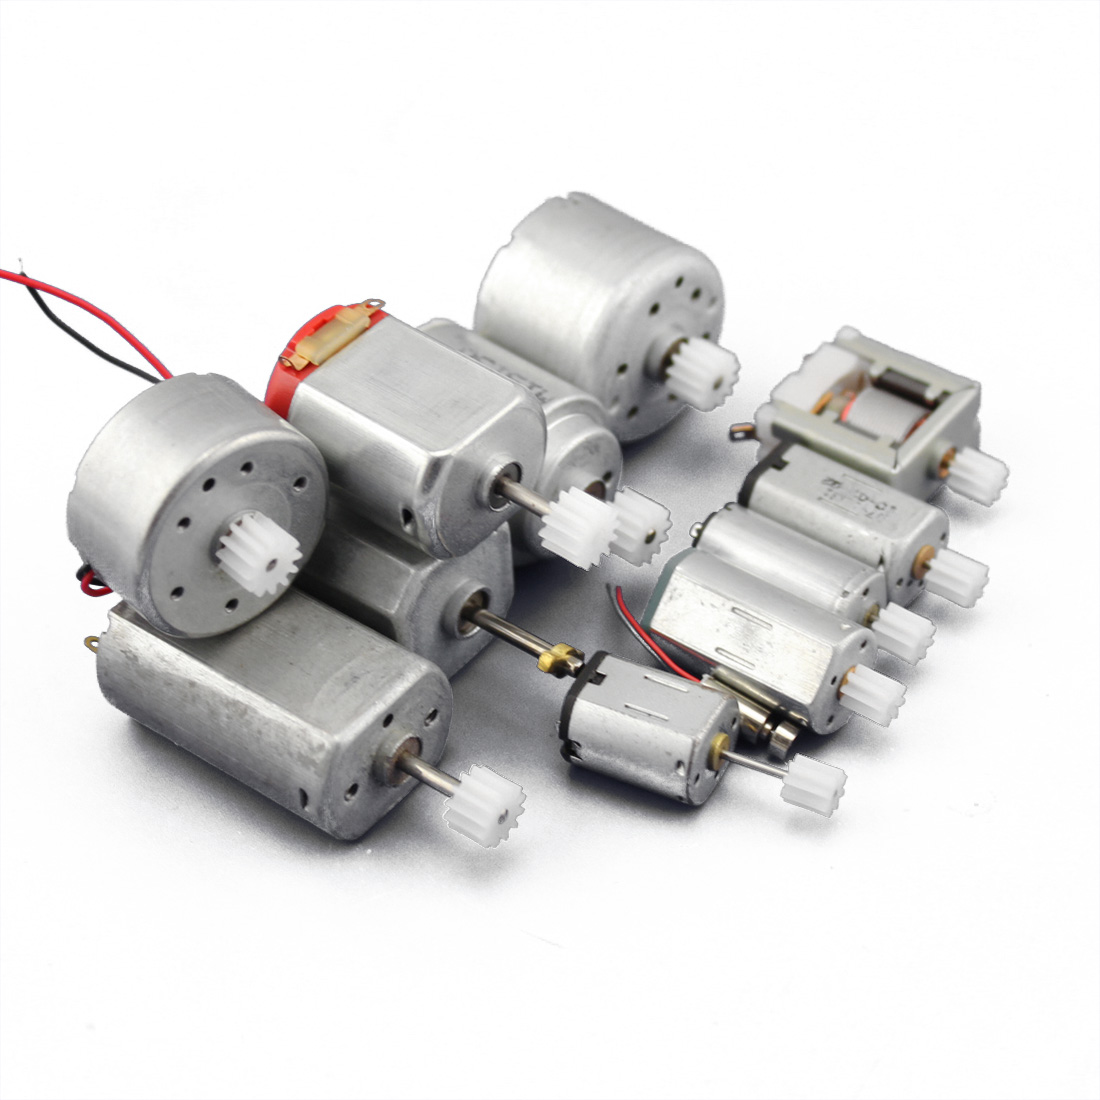 JMT Motor Gear Package 12pcs In Total DIY Model Accessories Technology Small Production Materials Micro-DC Small Motor F19220 precision dc motor 12mm micro all metal gear motor diy